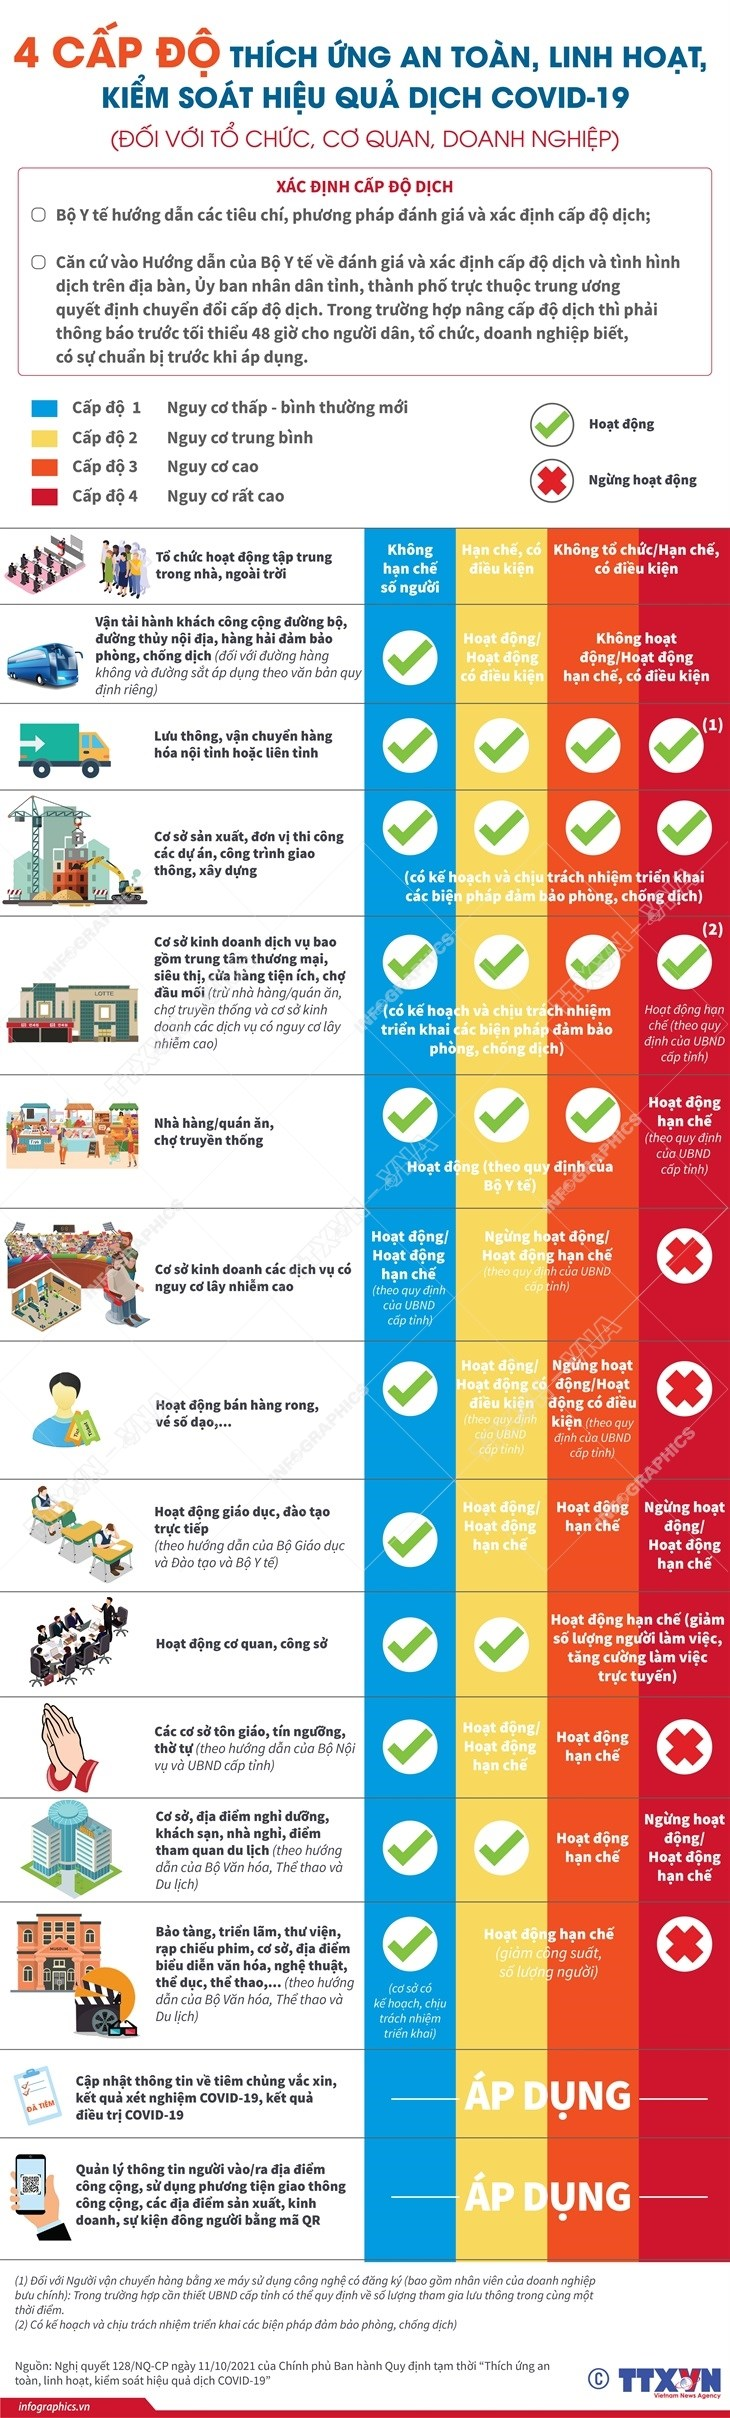 """[Infographics] Bon cap do """"thich ung an toan"""" voi dich COVID-19 hinh anh 2"""